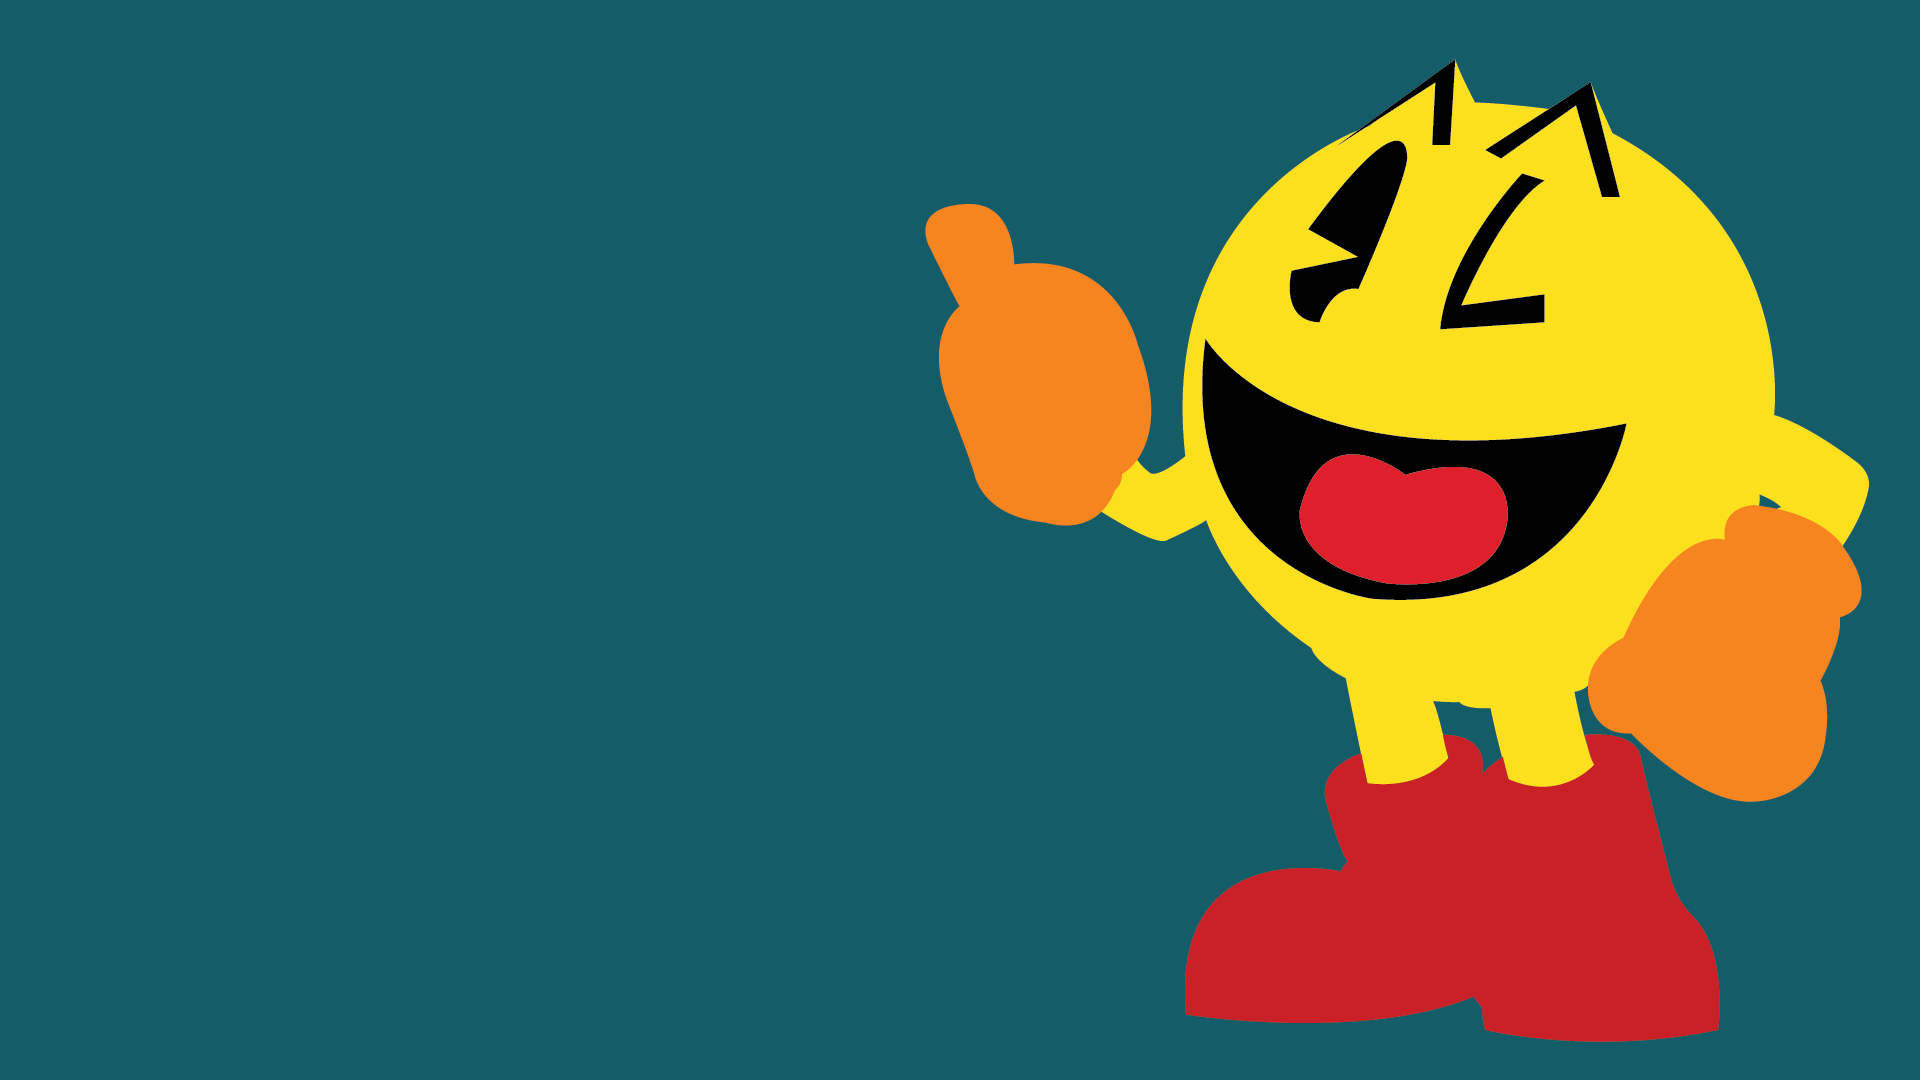 Pictures of Pacman HD, 1920x1080 px, 05/05/2014